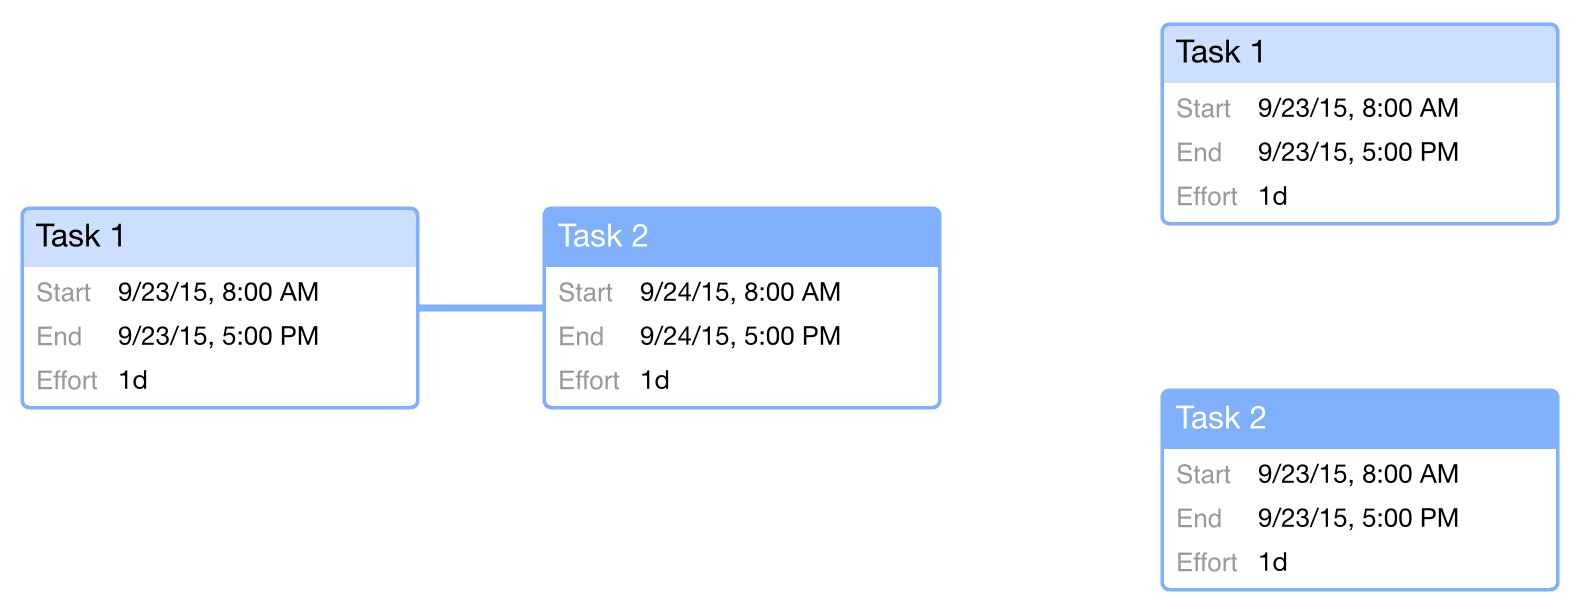 Creating a new task in Network View, either with or without a dependency.